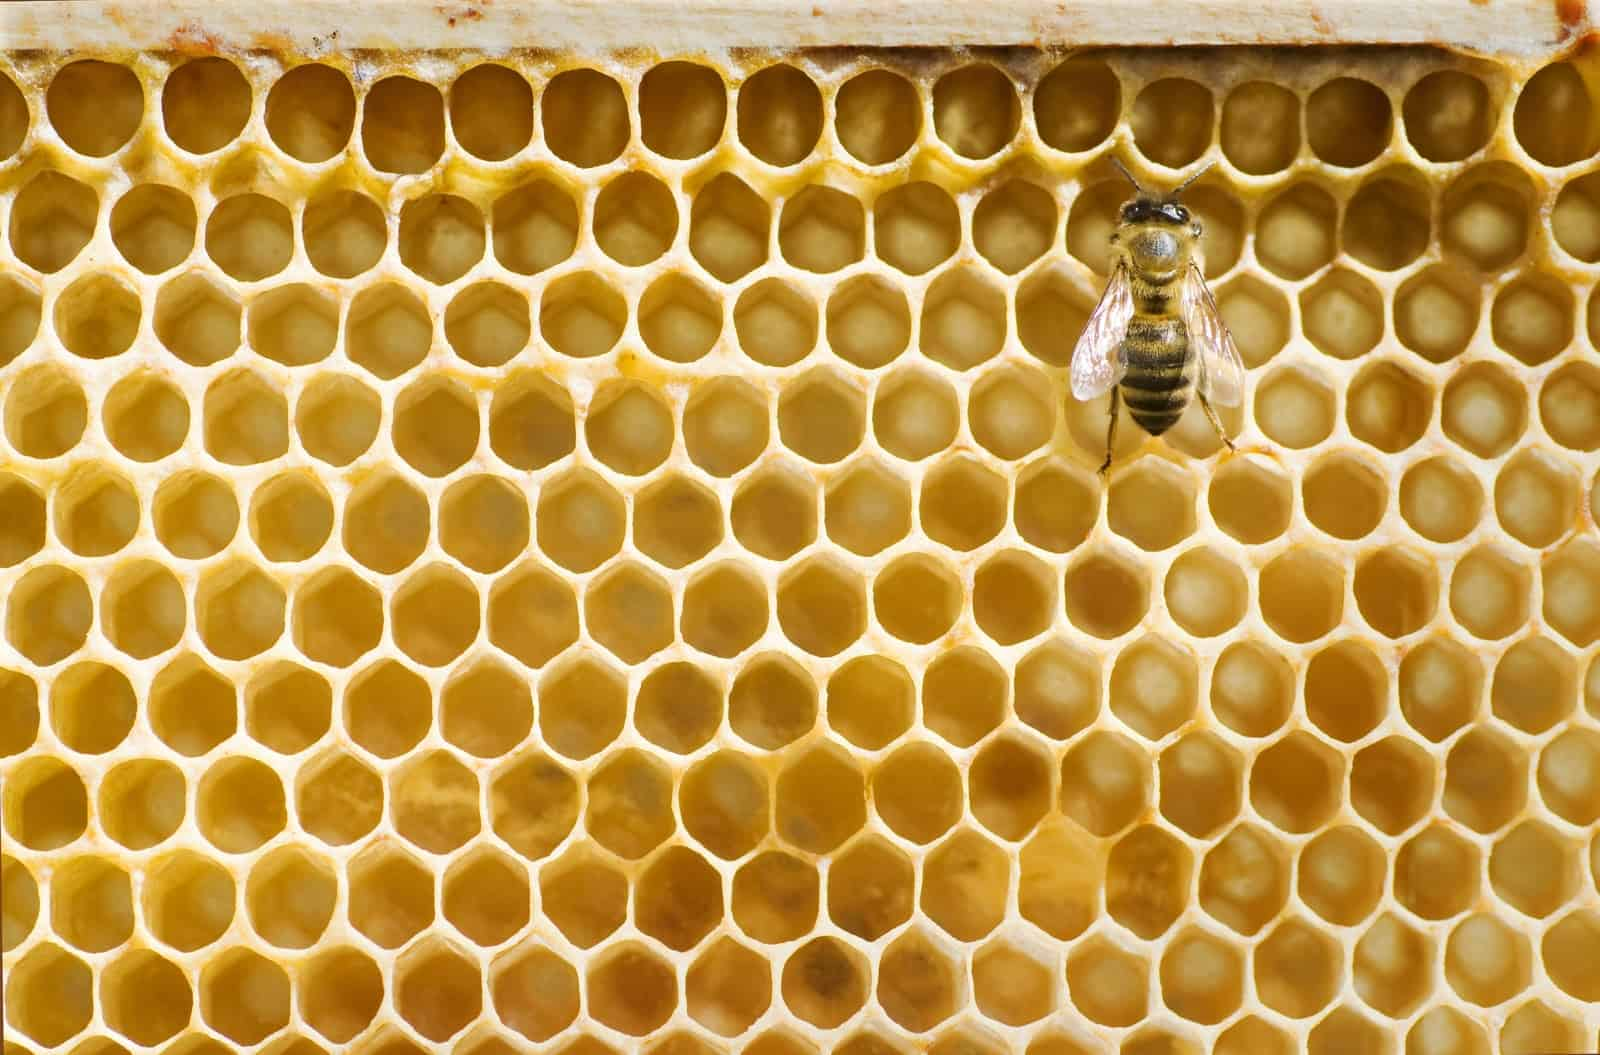 Can you start a hive with only the queen?